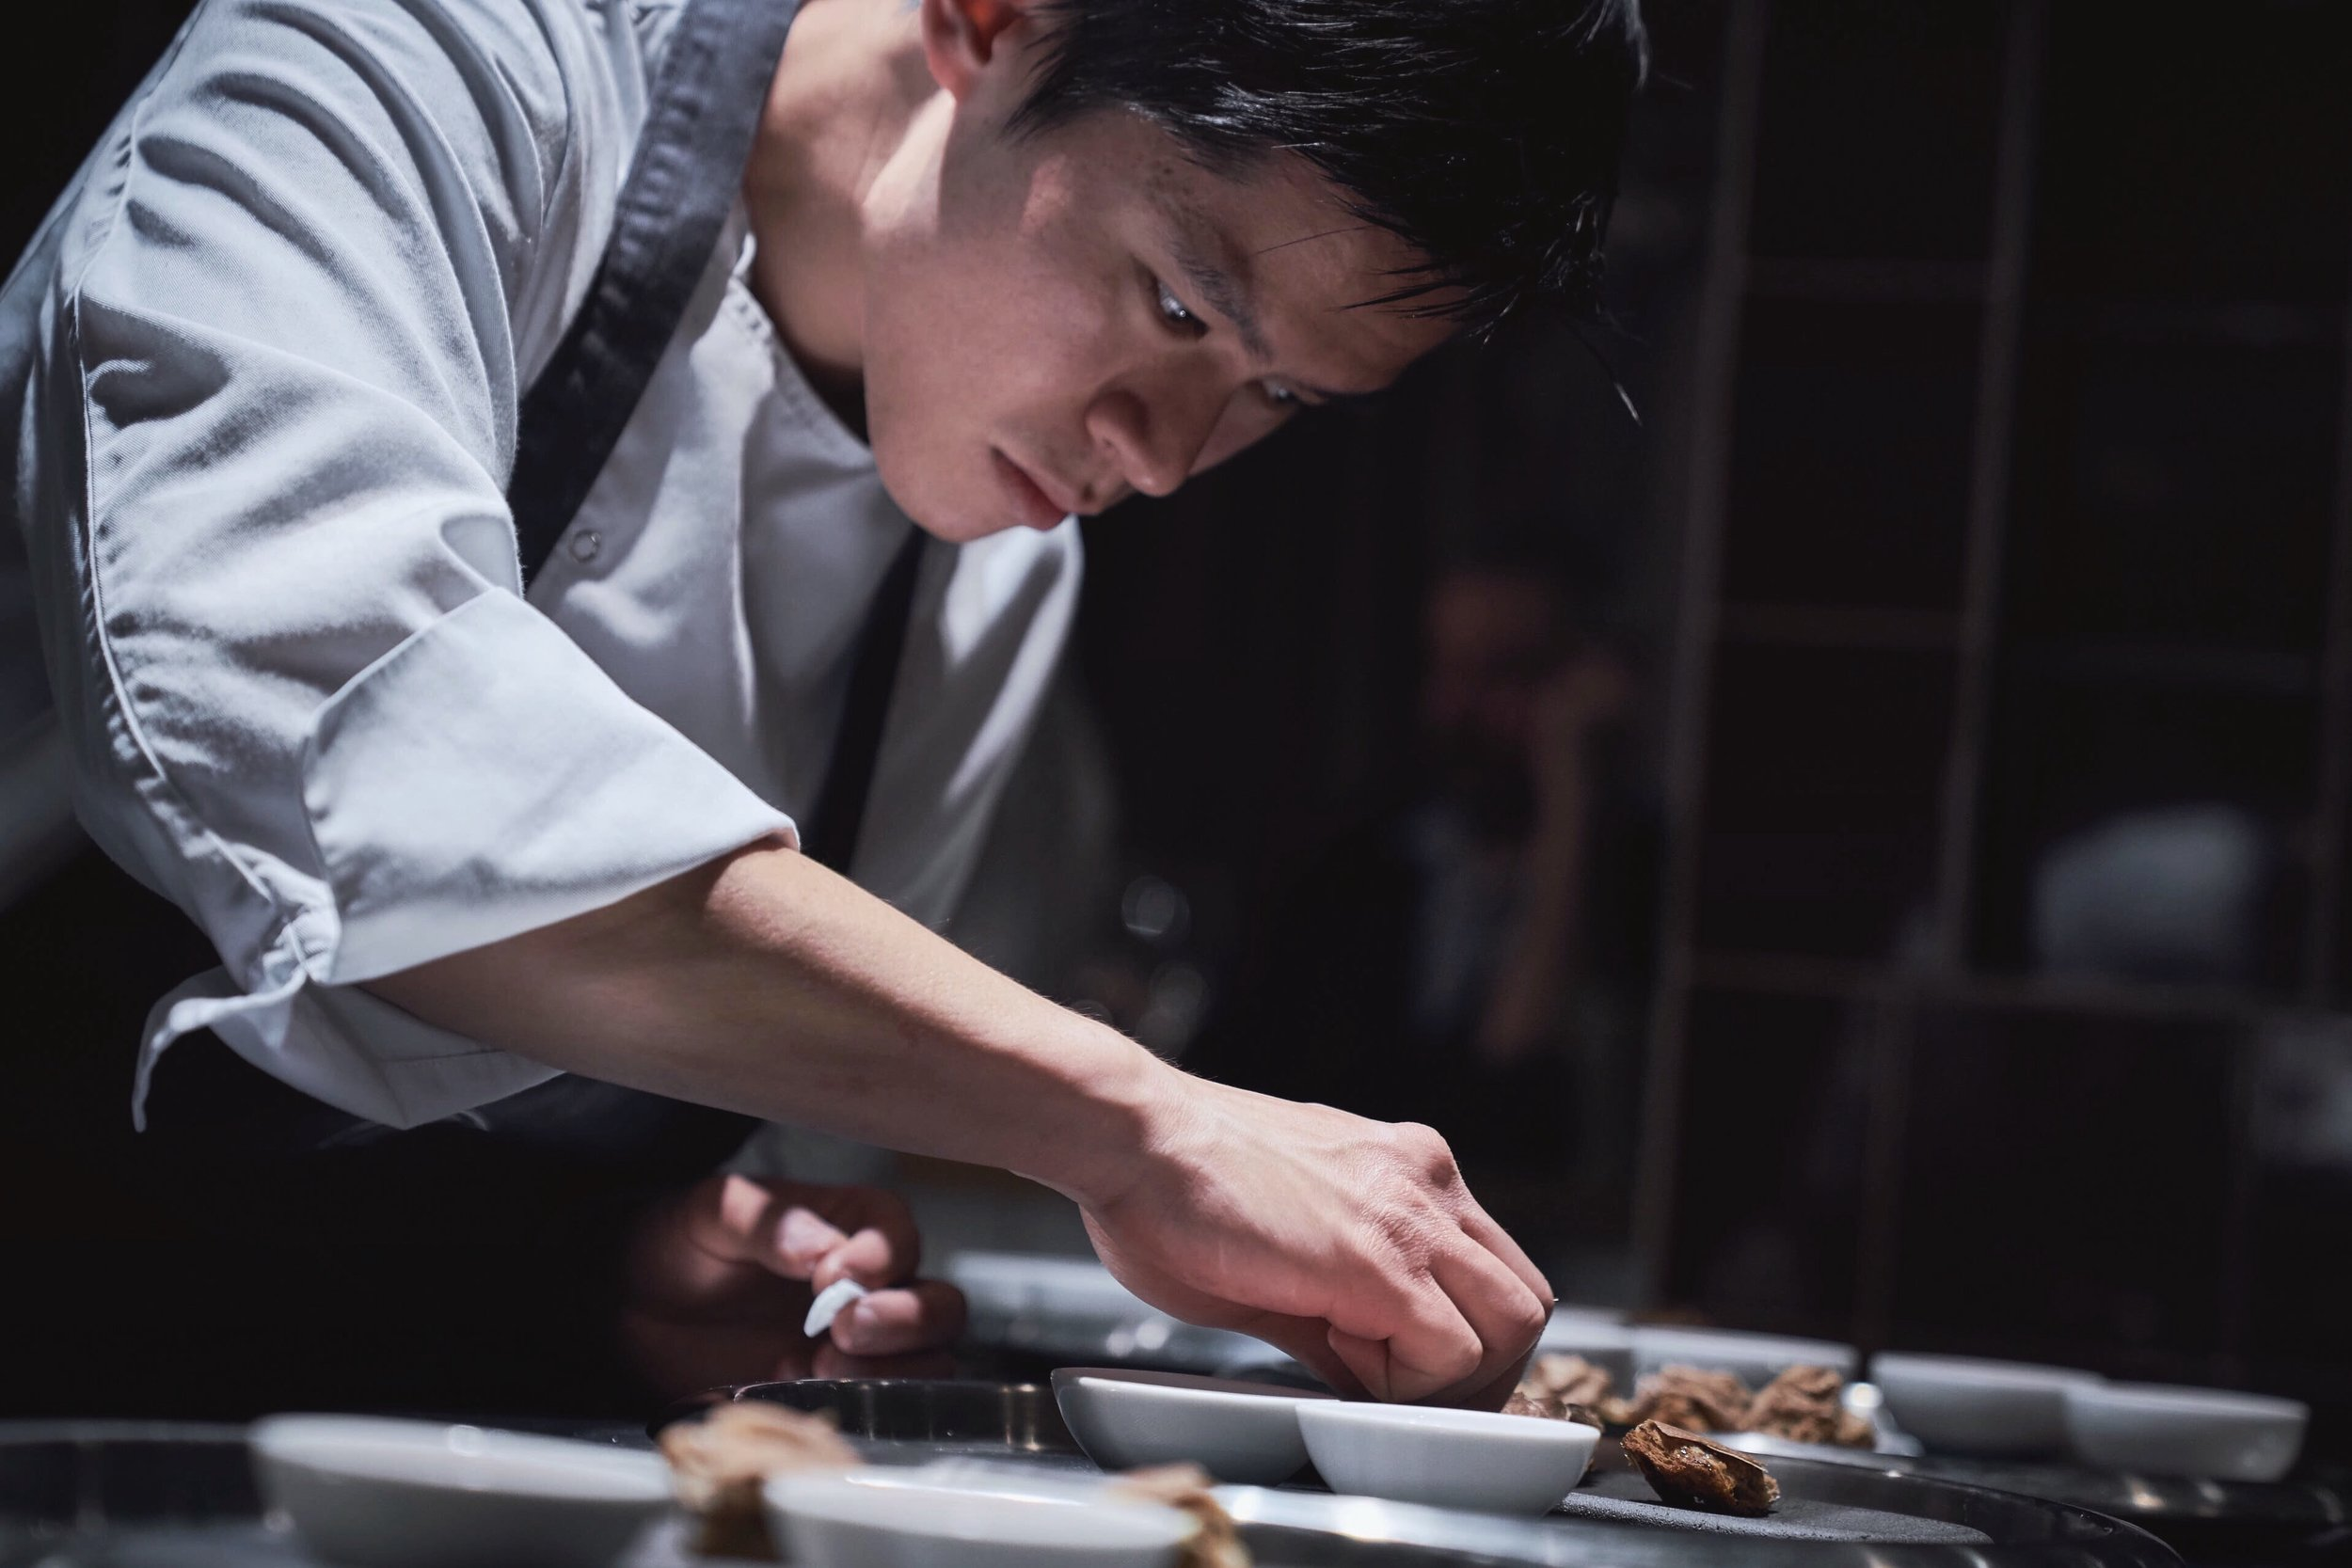 Other Chef 1.jpg